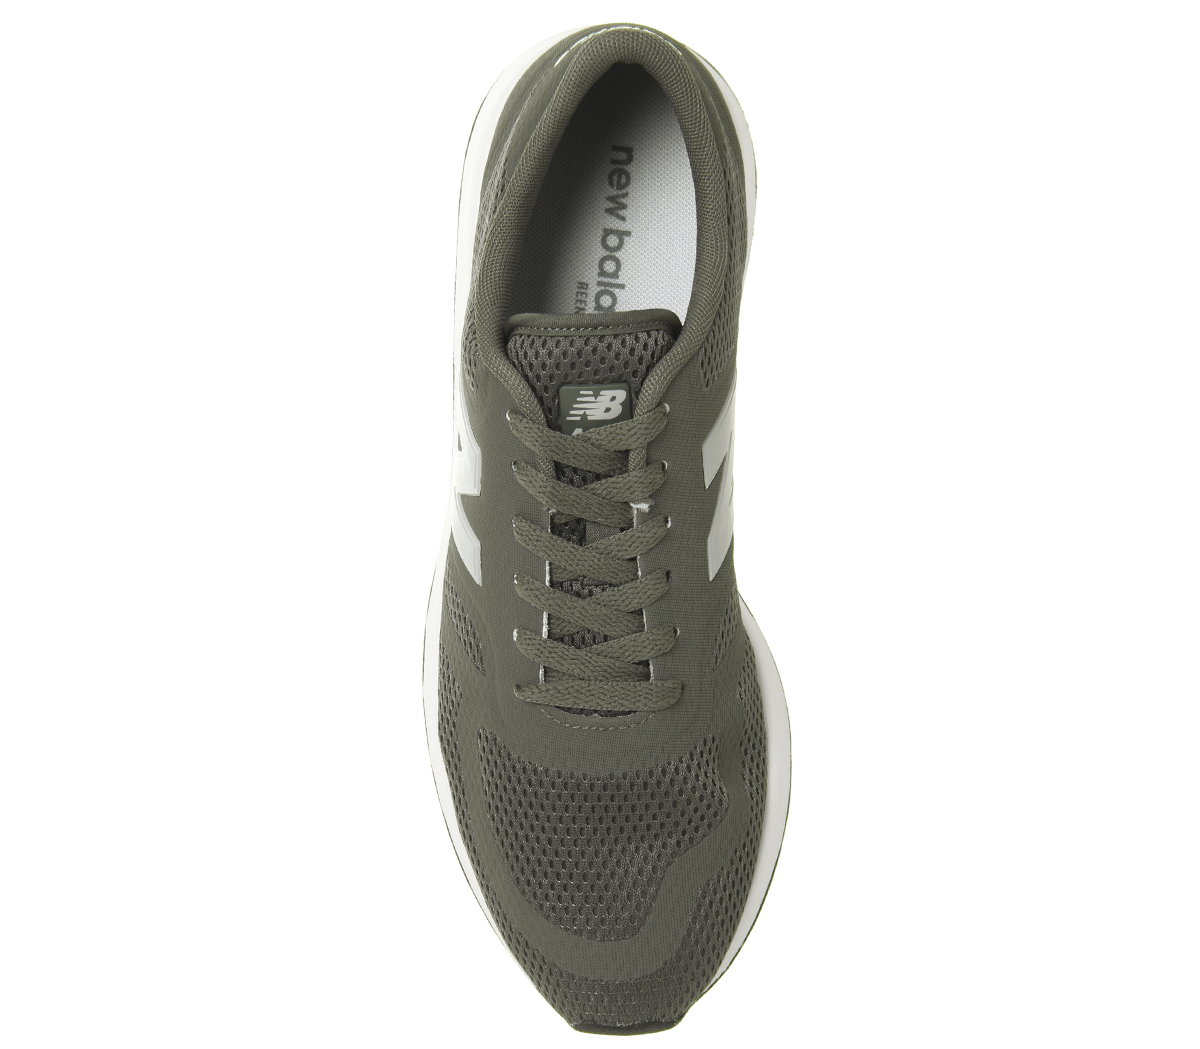 Herren New Balance Mrl420 Trainers MILITARY GREEN FOLIAGE GREEN MILITARY Trainers Schuhes 033628